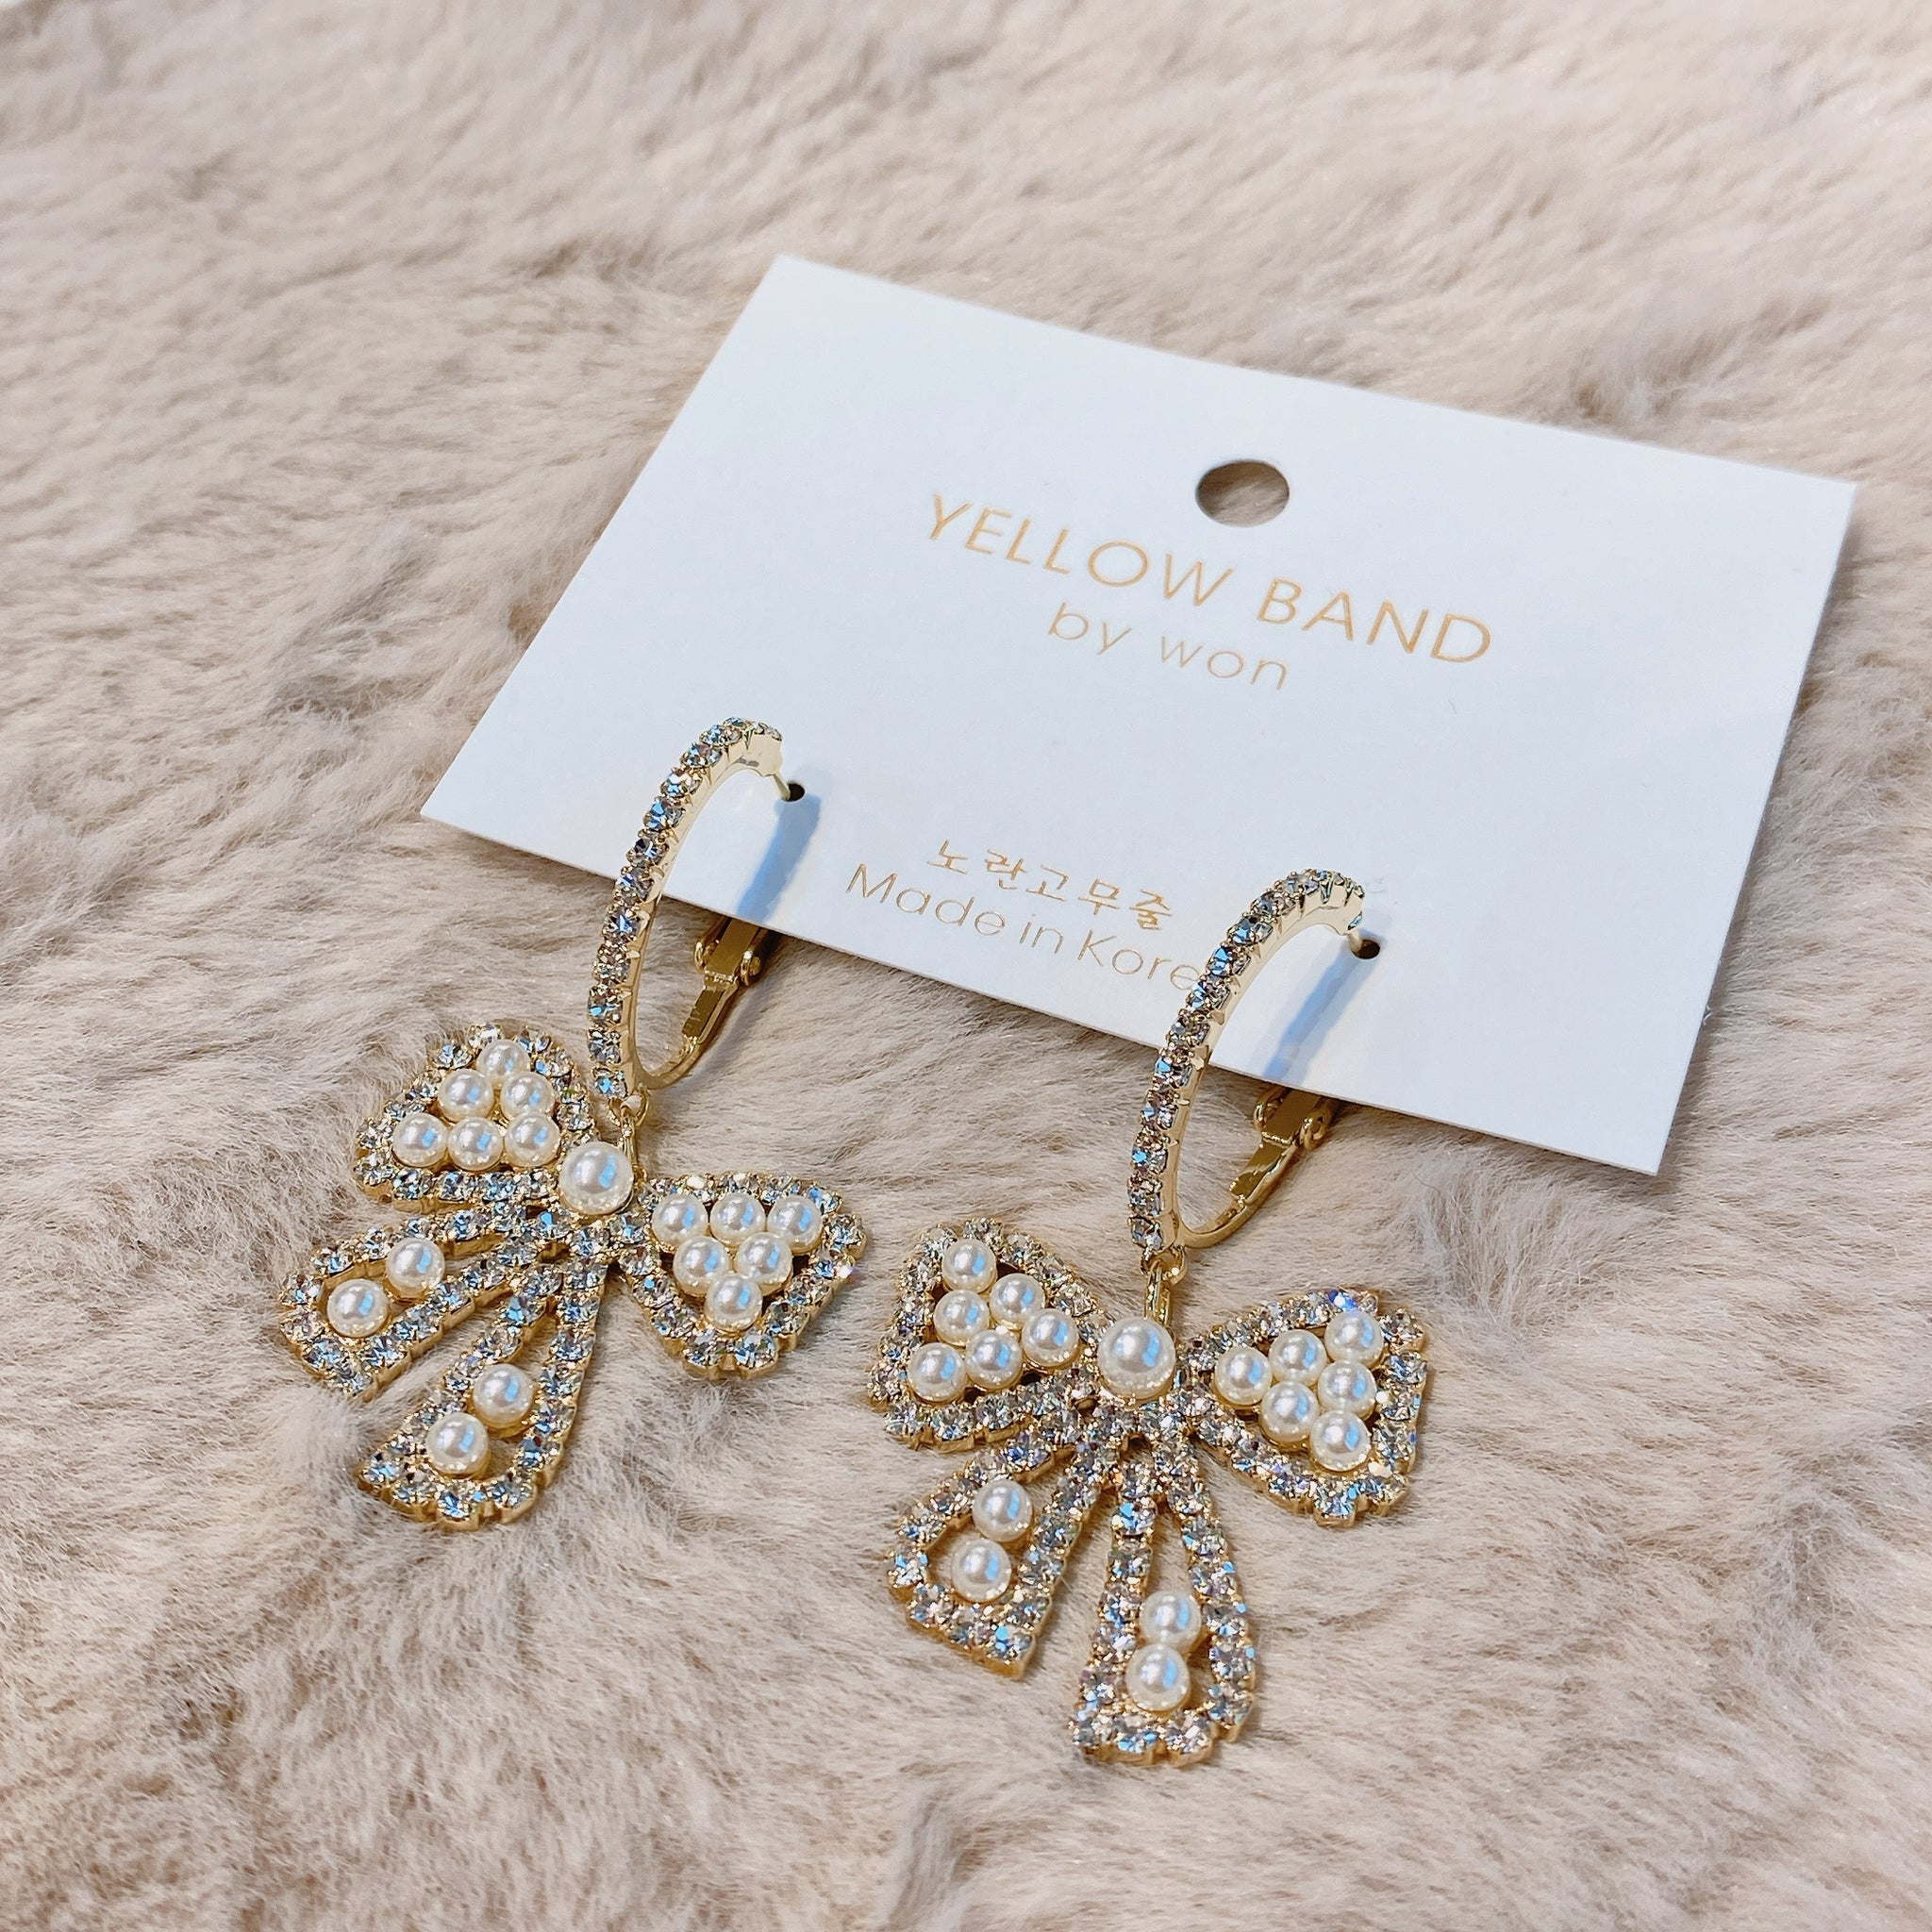 YBPA009  YB Fancy Ribbon Earrings